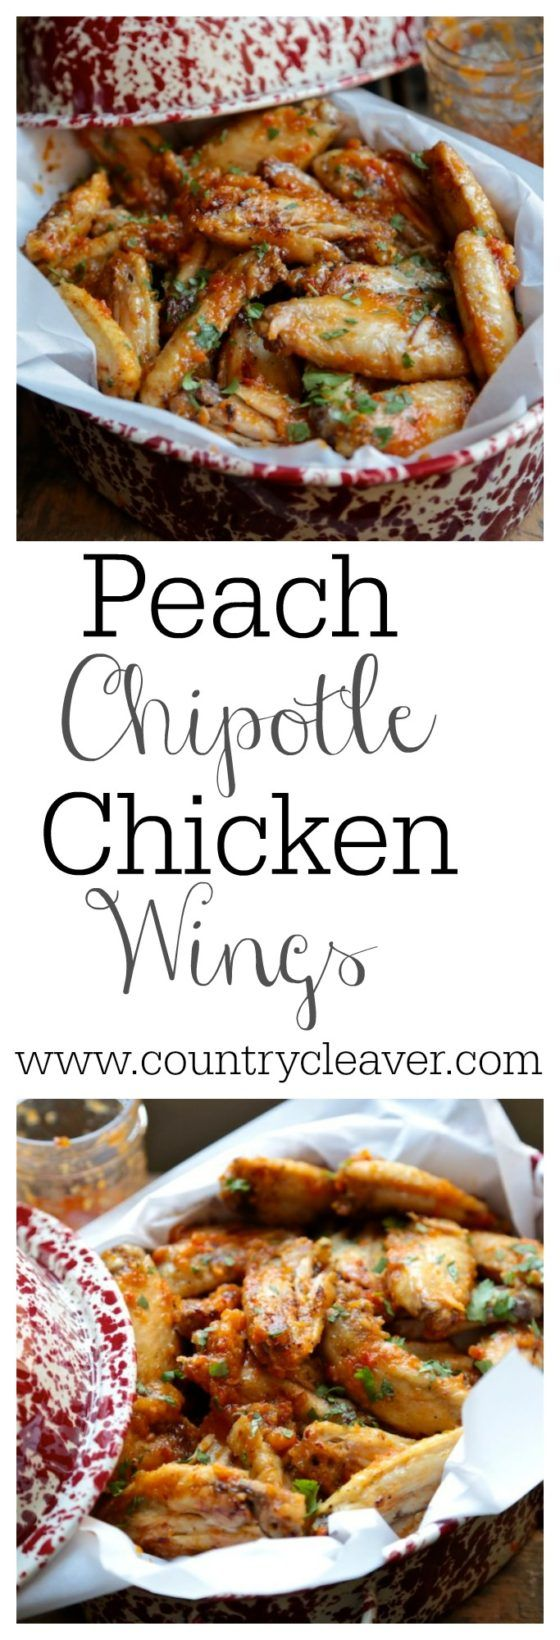 Peach Chipotle Chicken Wings